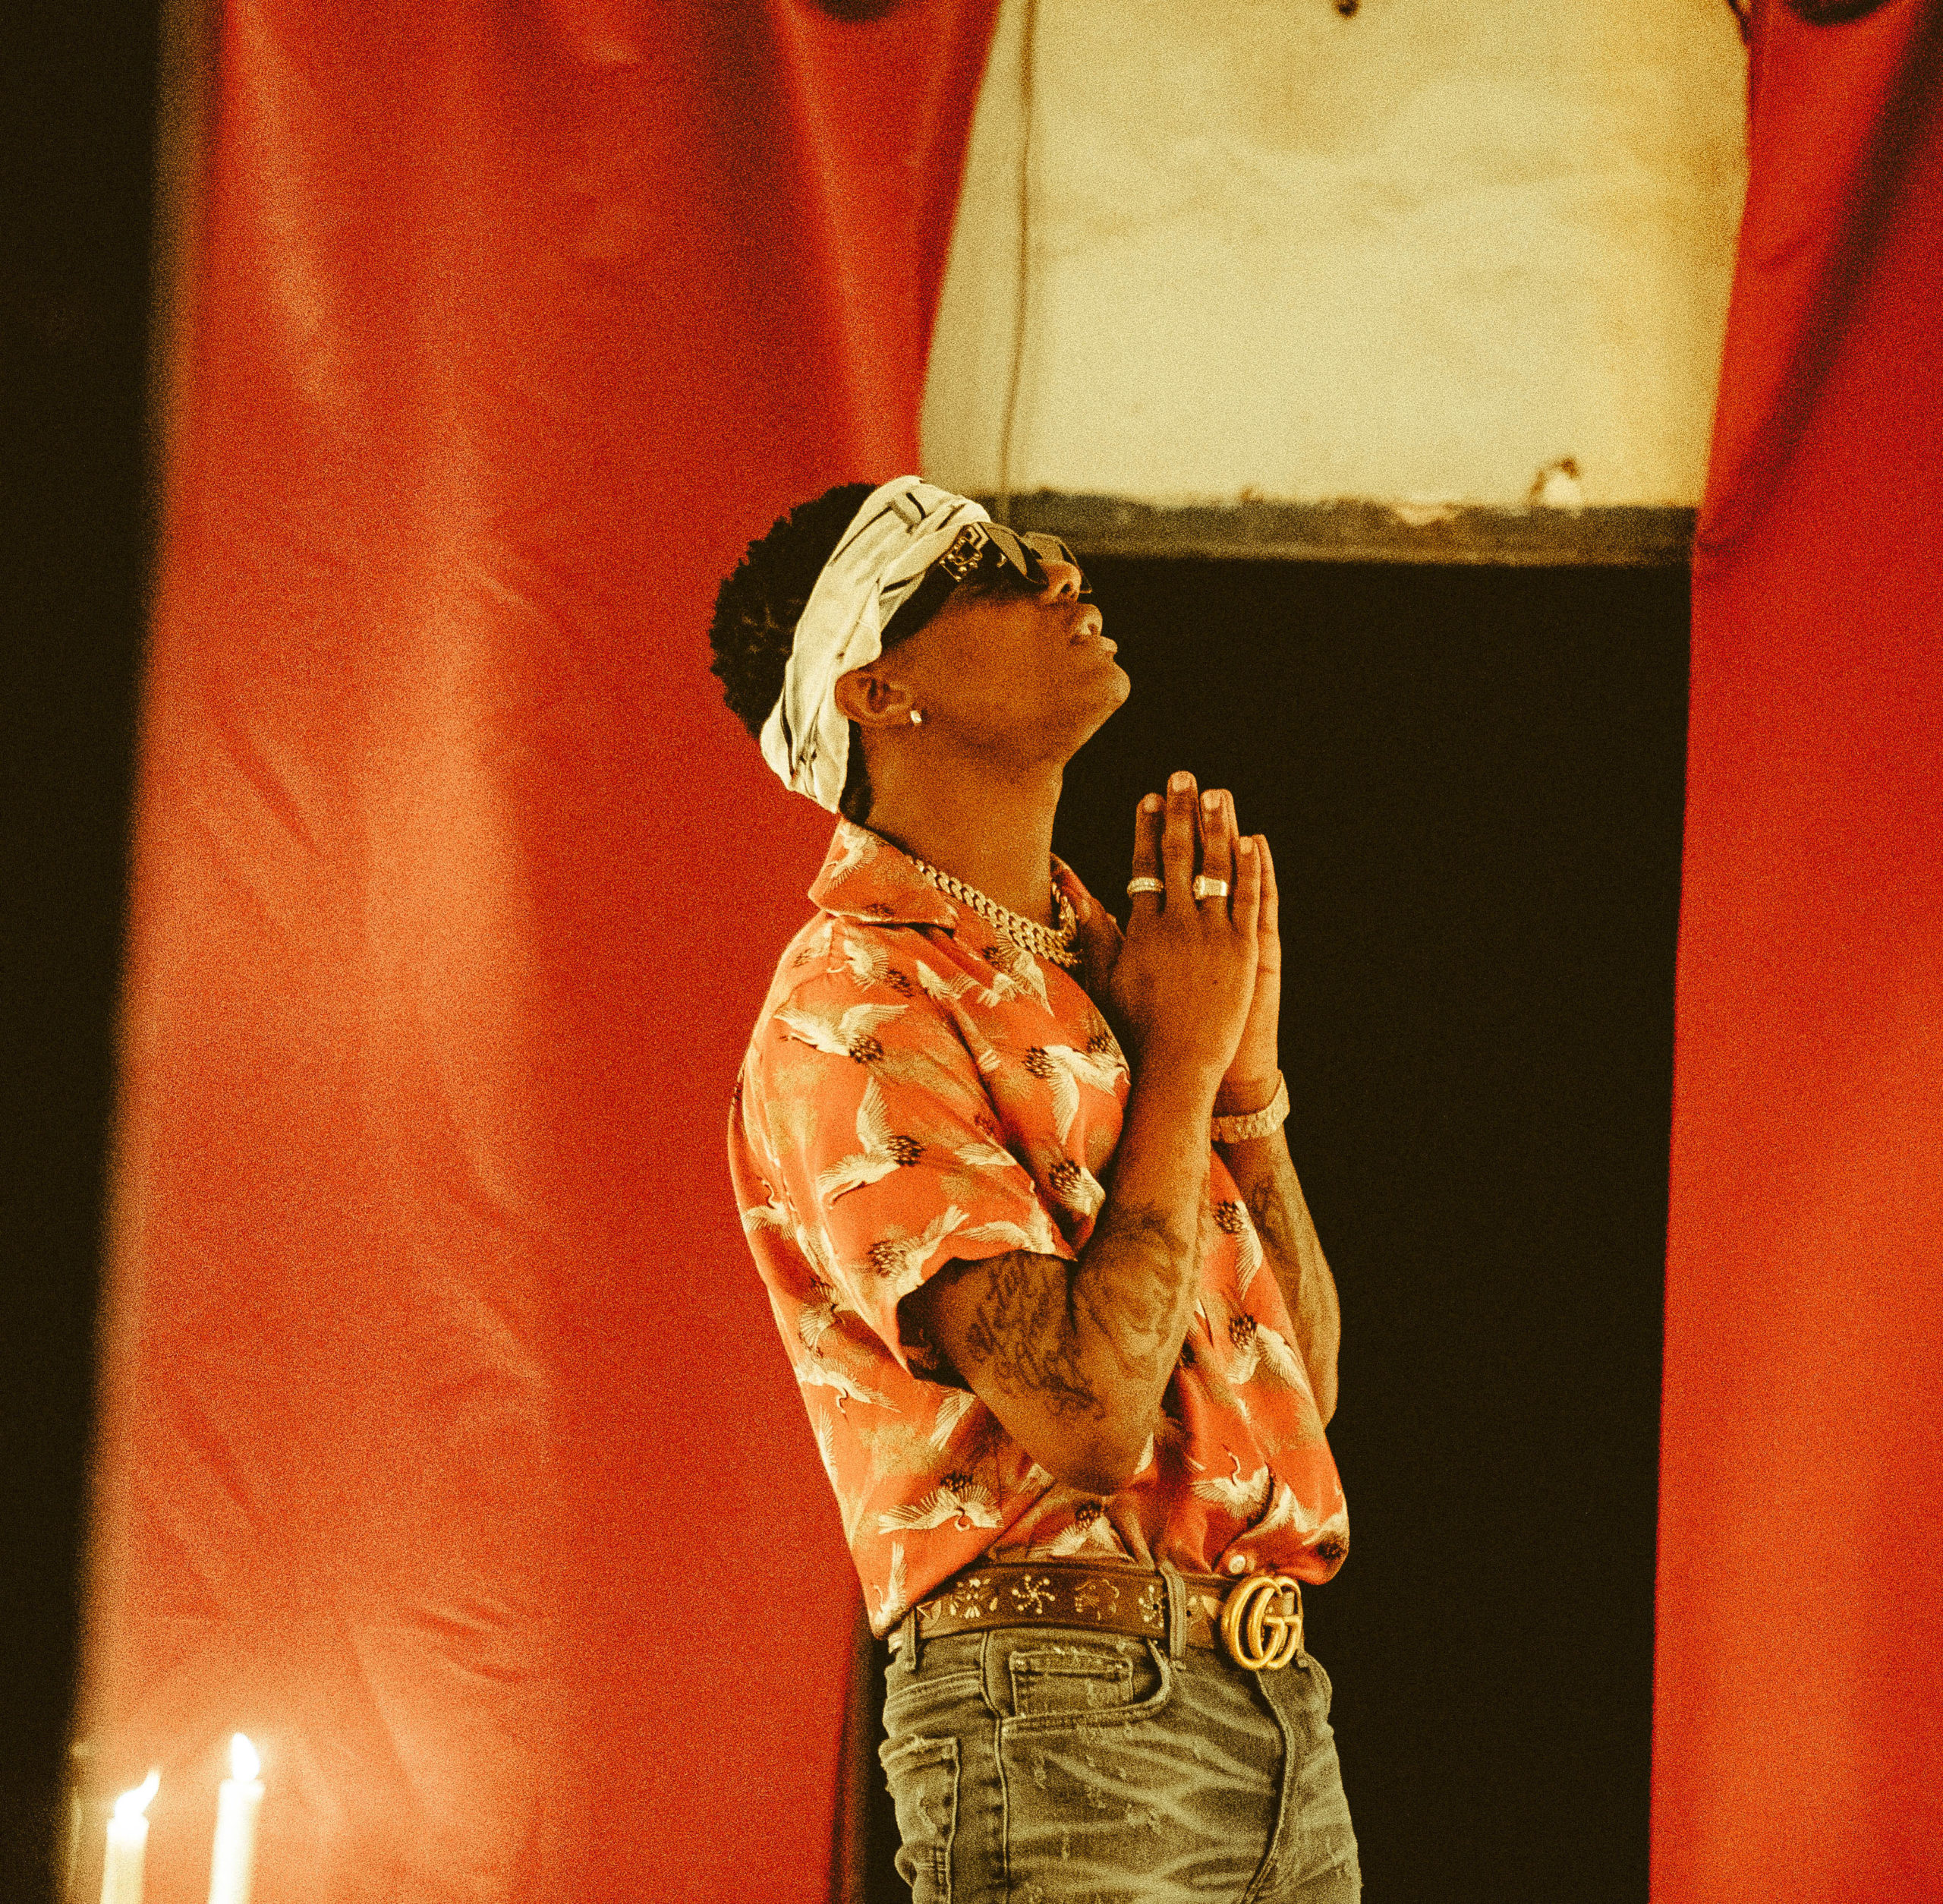 I Have 3 Sons That I Love With All My Heart - Wizkid Tells Apple Music His Goal As A Parent